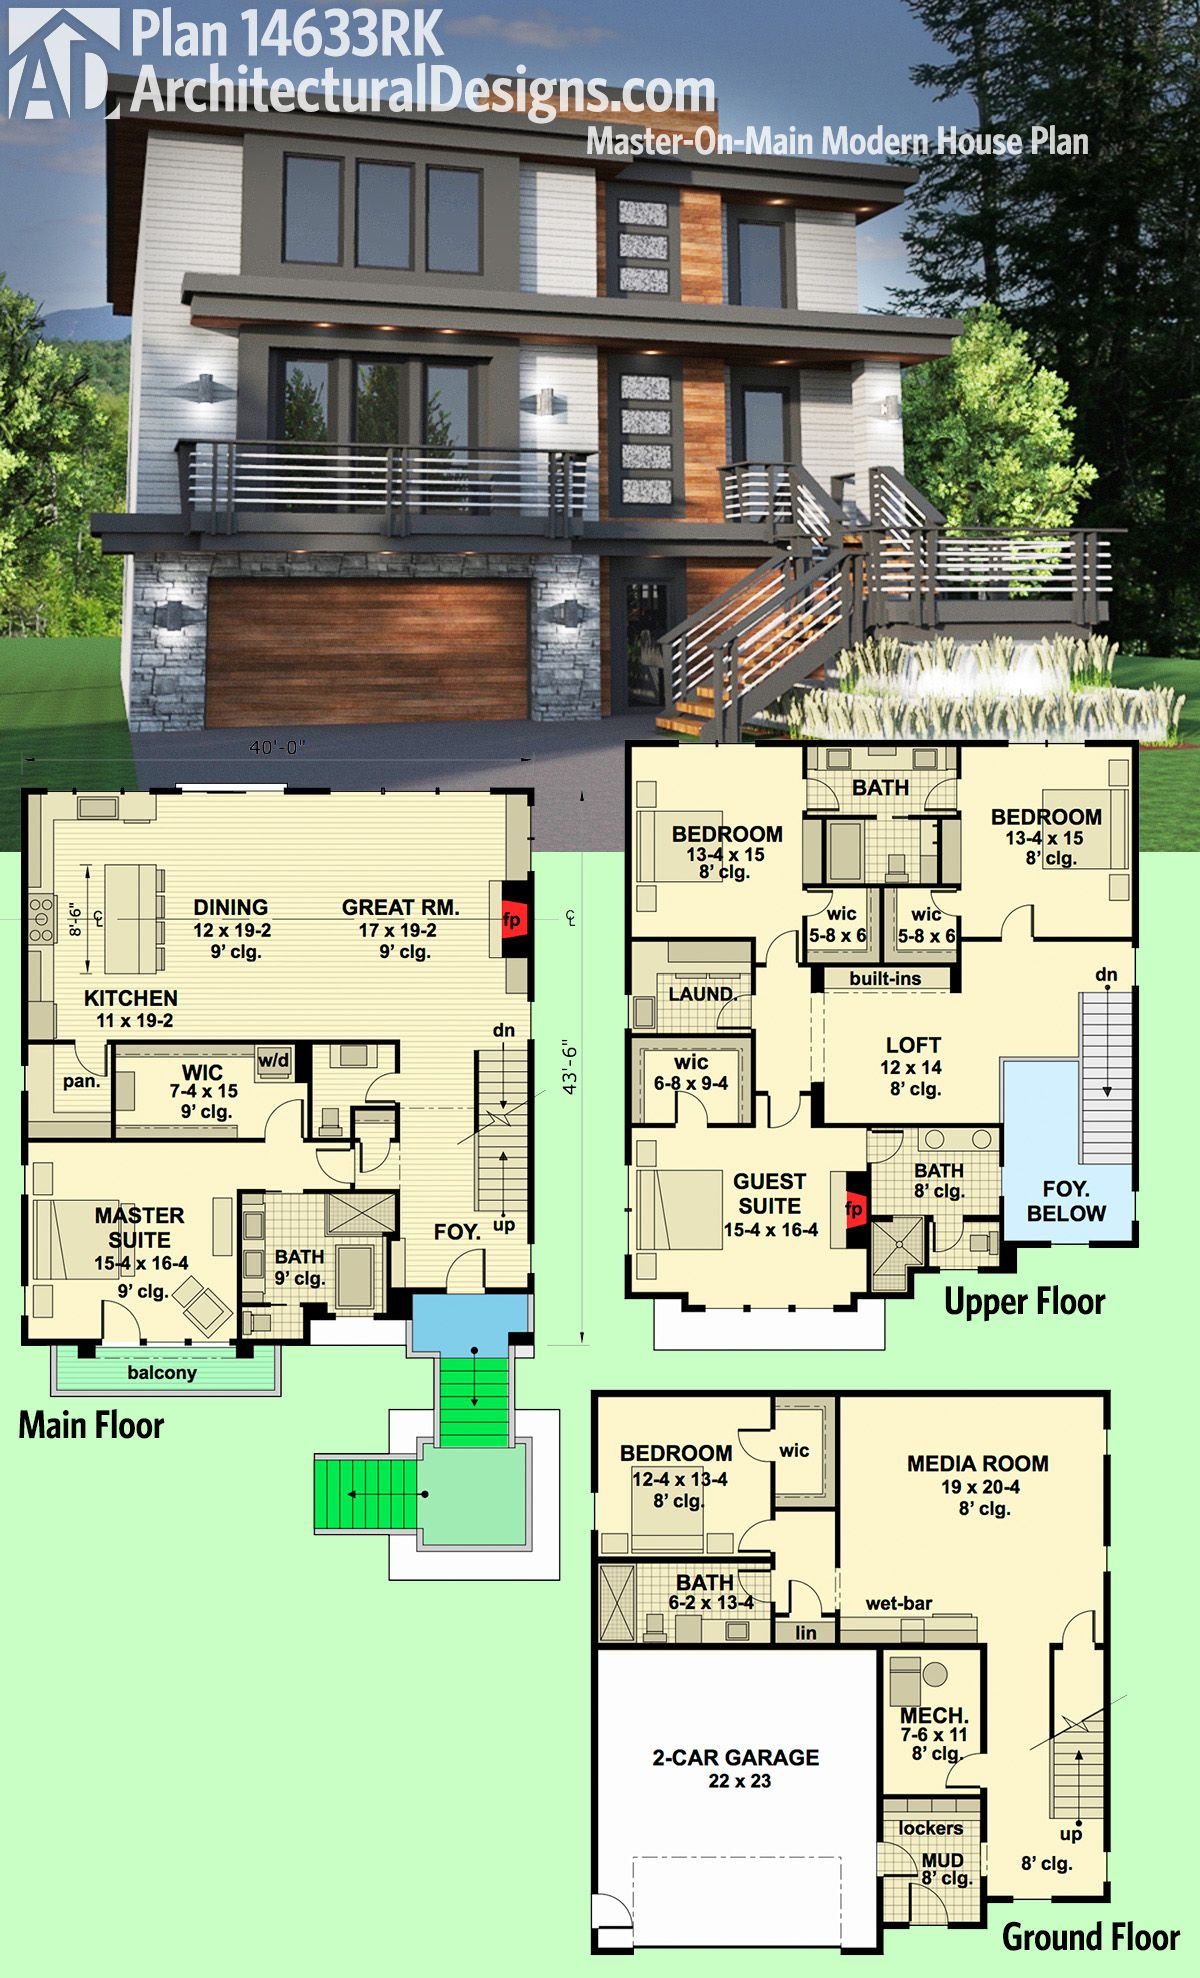 Modern Homes Floorplans Plan 14633rk Master On Main Modern House Plan In 2019